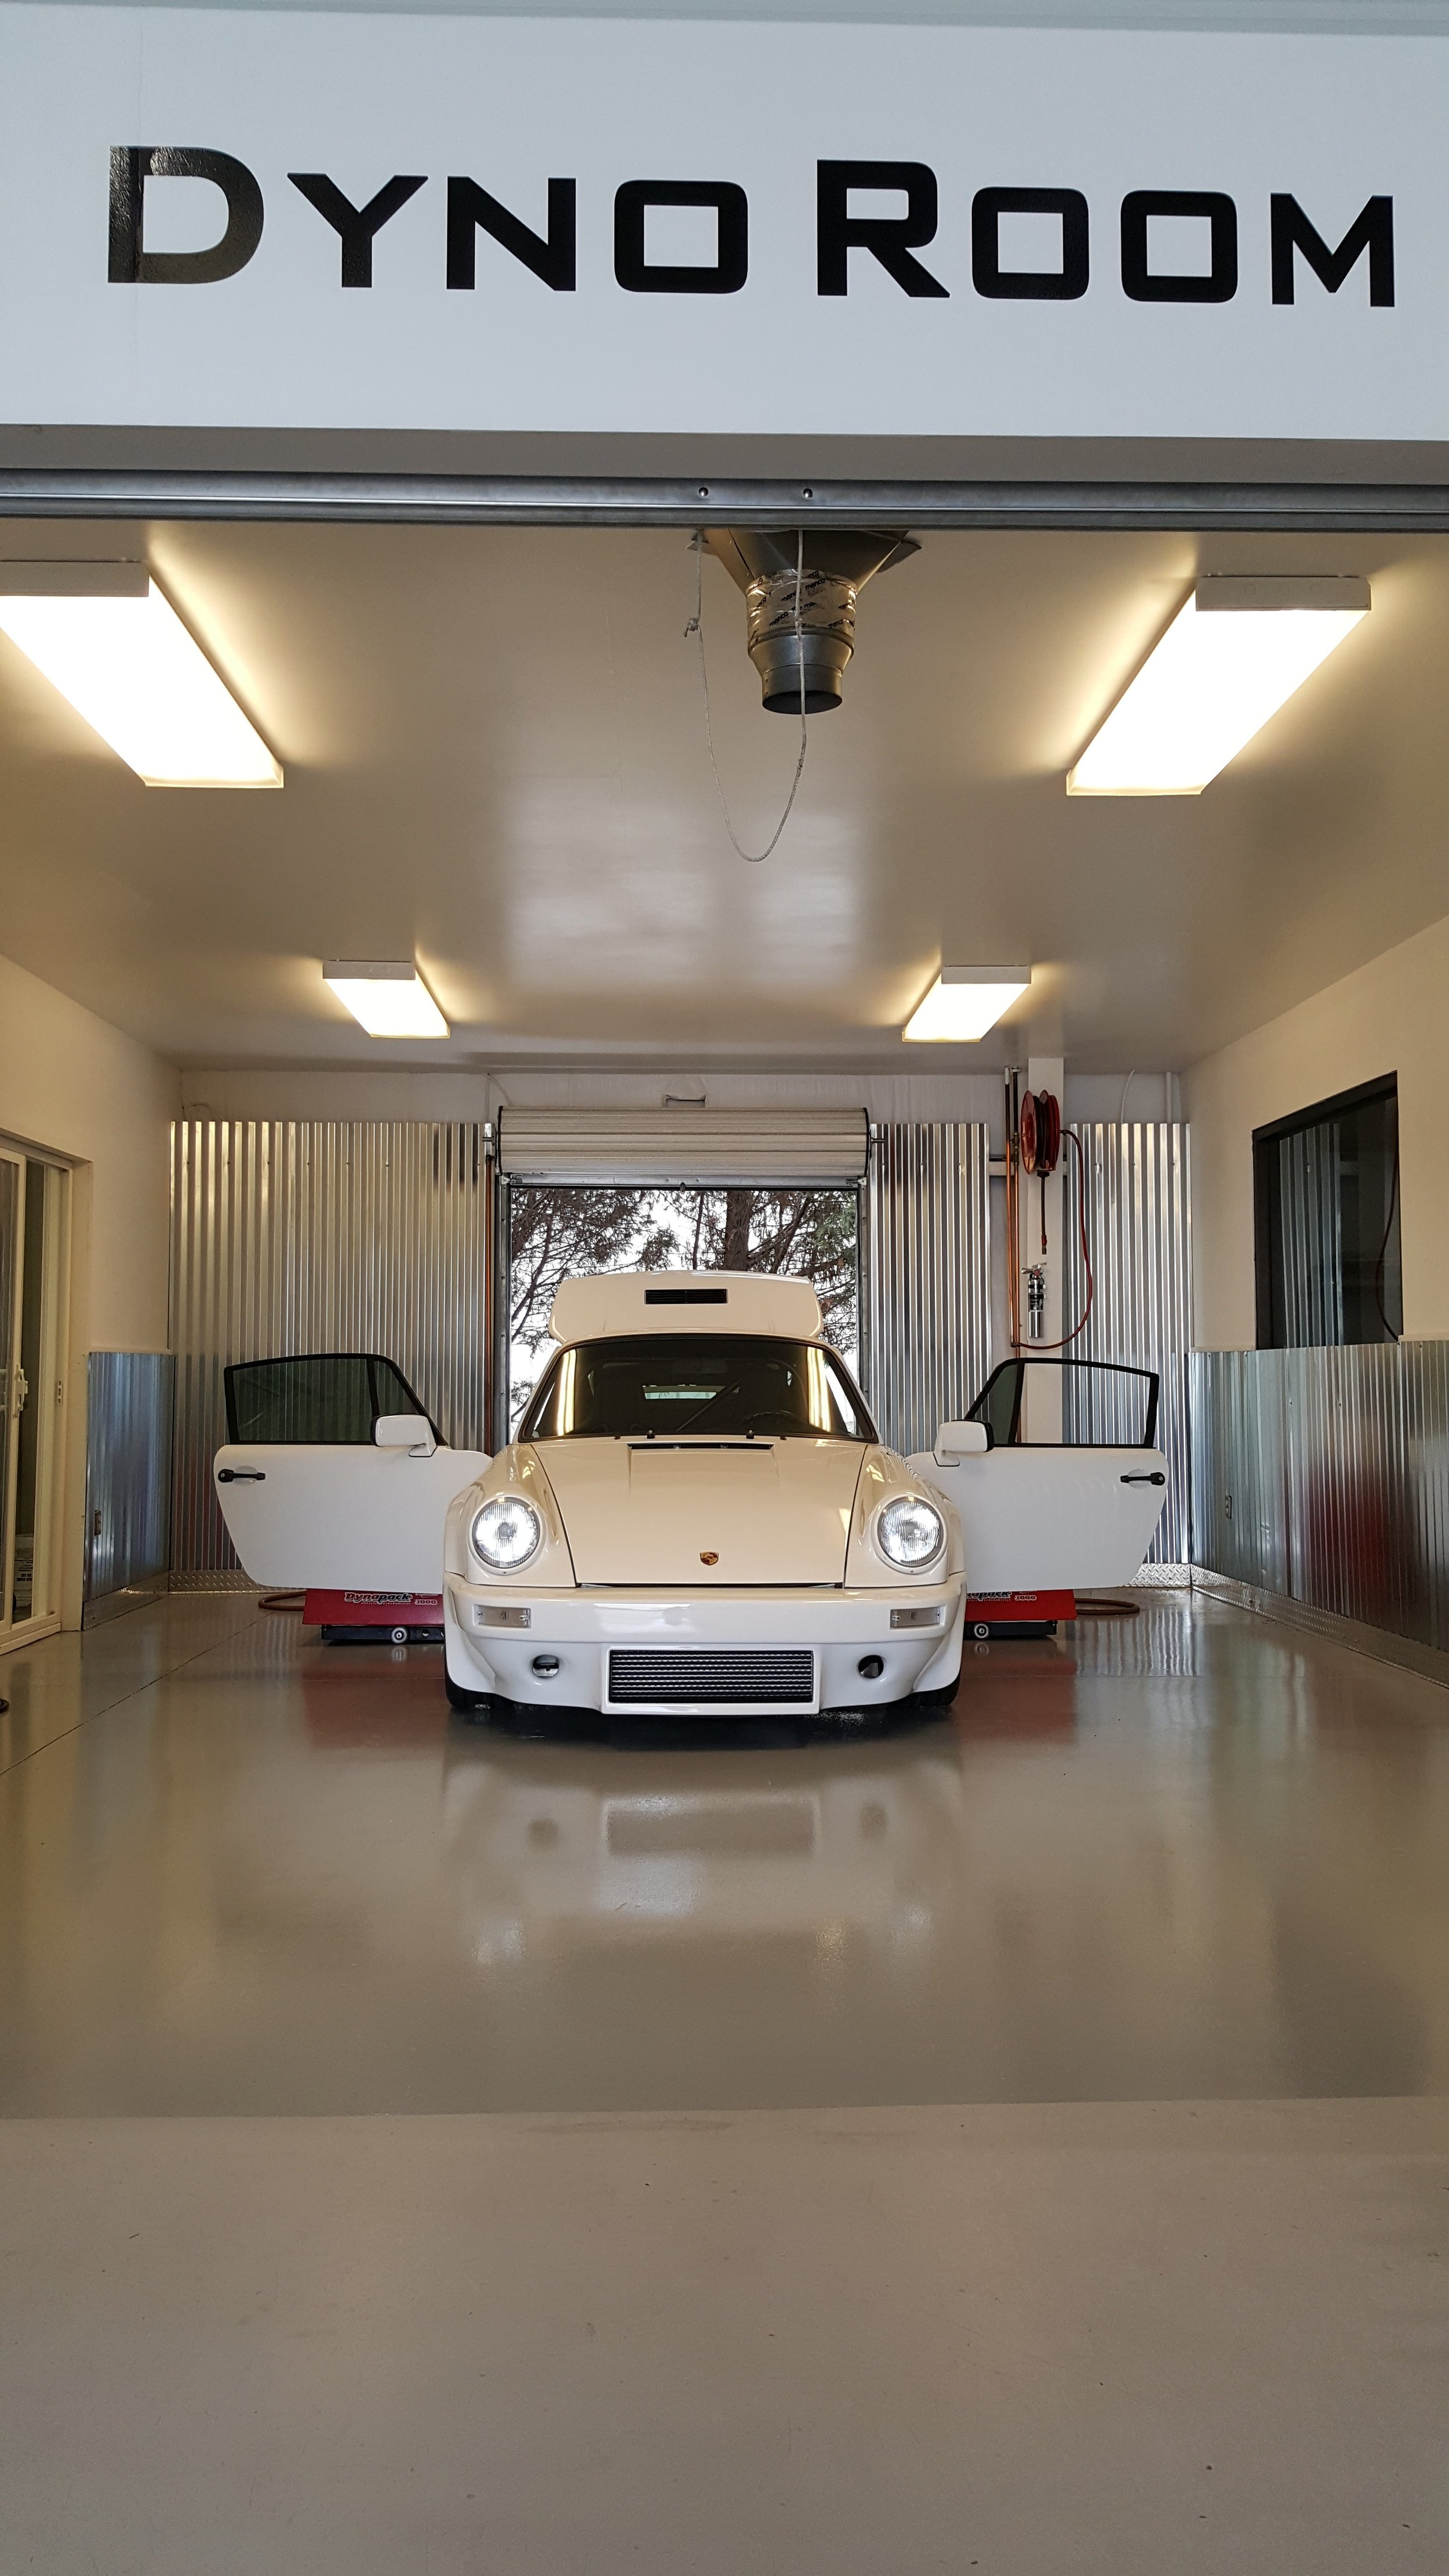 Motor Werks Racing Porsche Dyno Tuning Cell